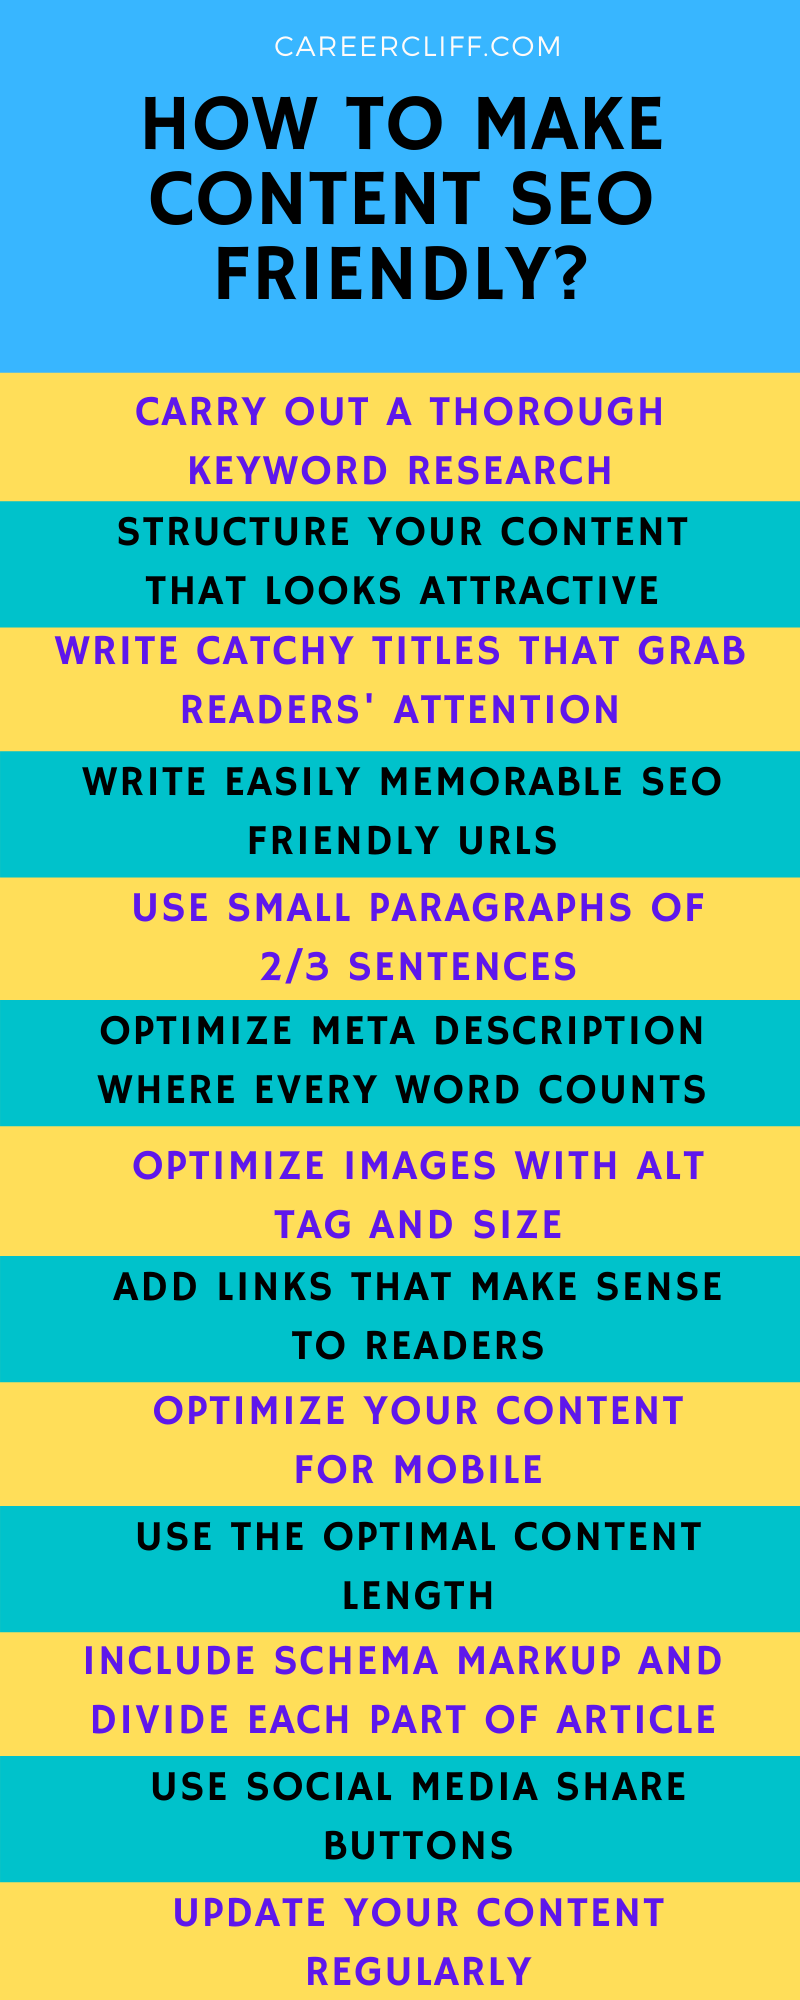 how to write seo friendly article how to write seo friendly content how to write seo friendly blog posts how to make content seo friendly how to write a seo friendly article how to write seo friendly website content how to make an article seo friendly